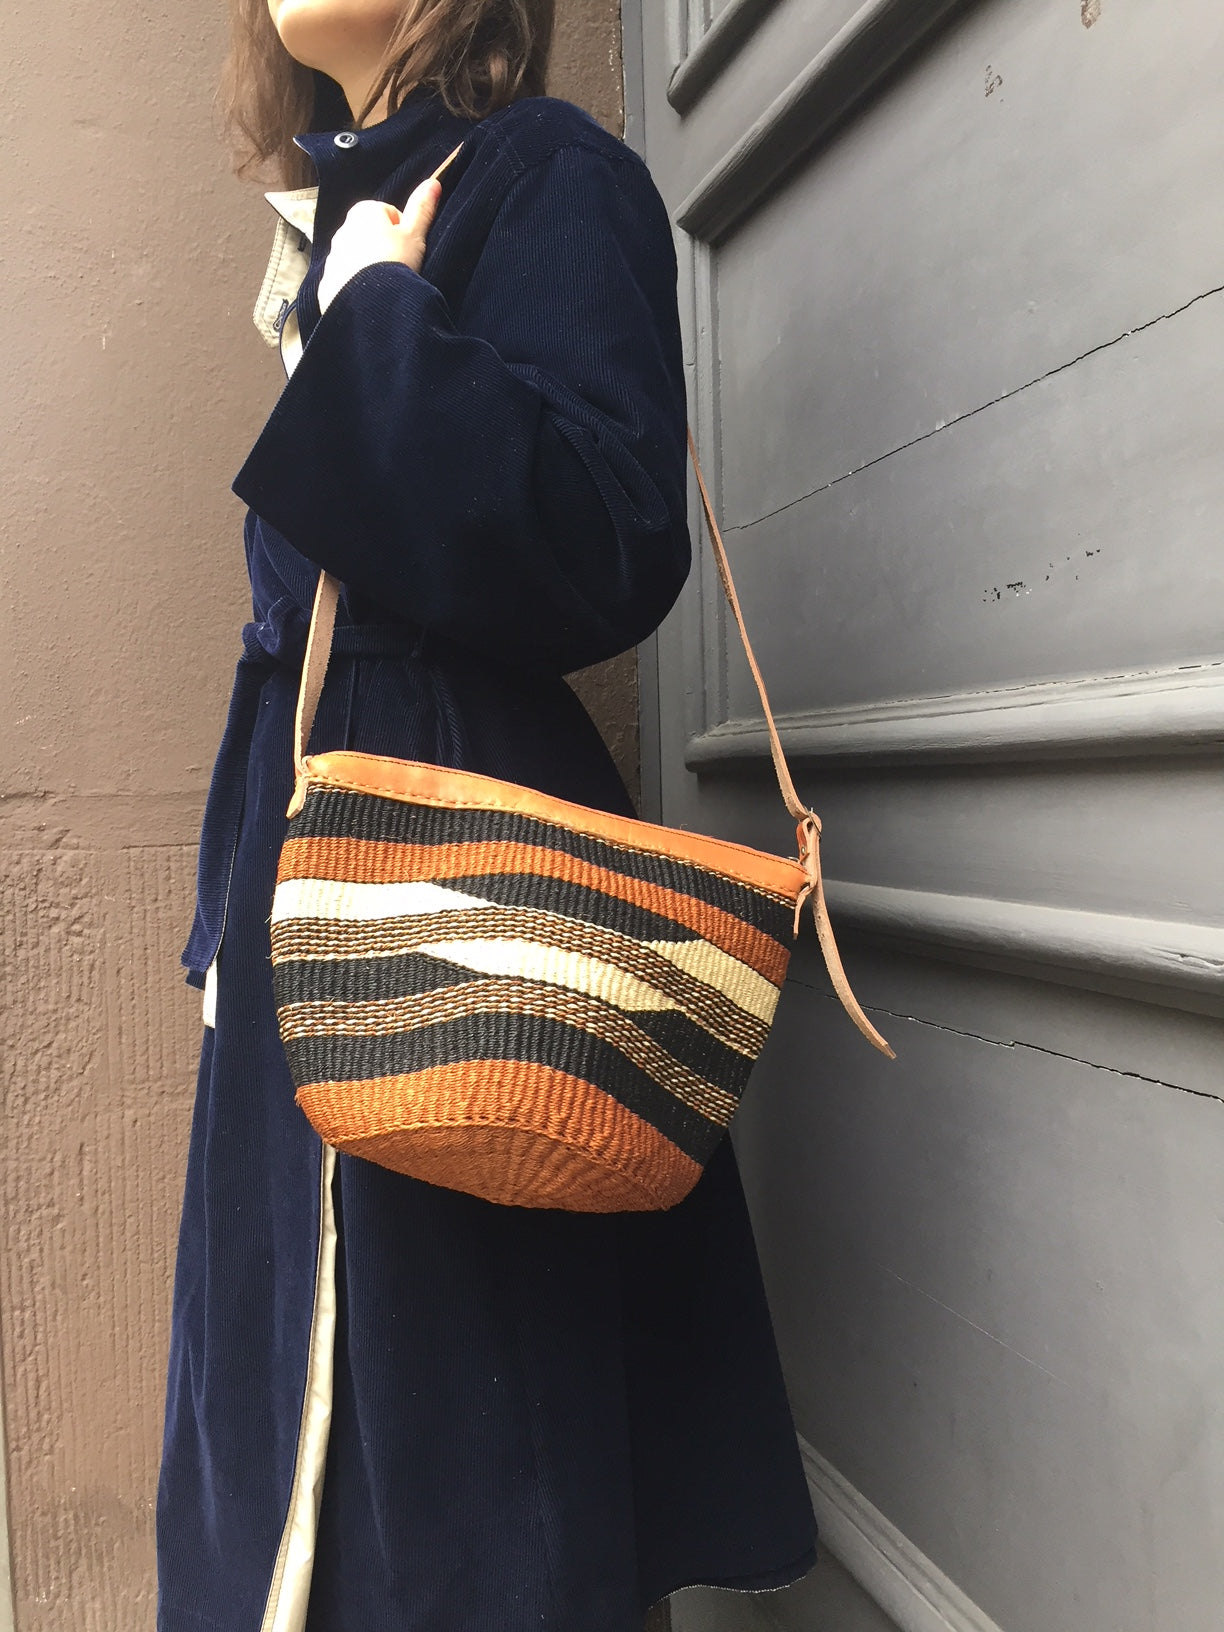 SISAL PURSE striped pattern